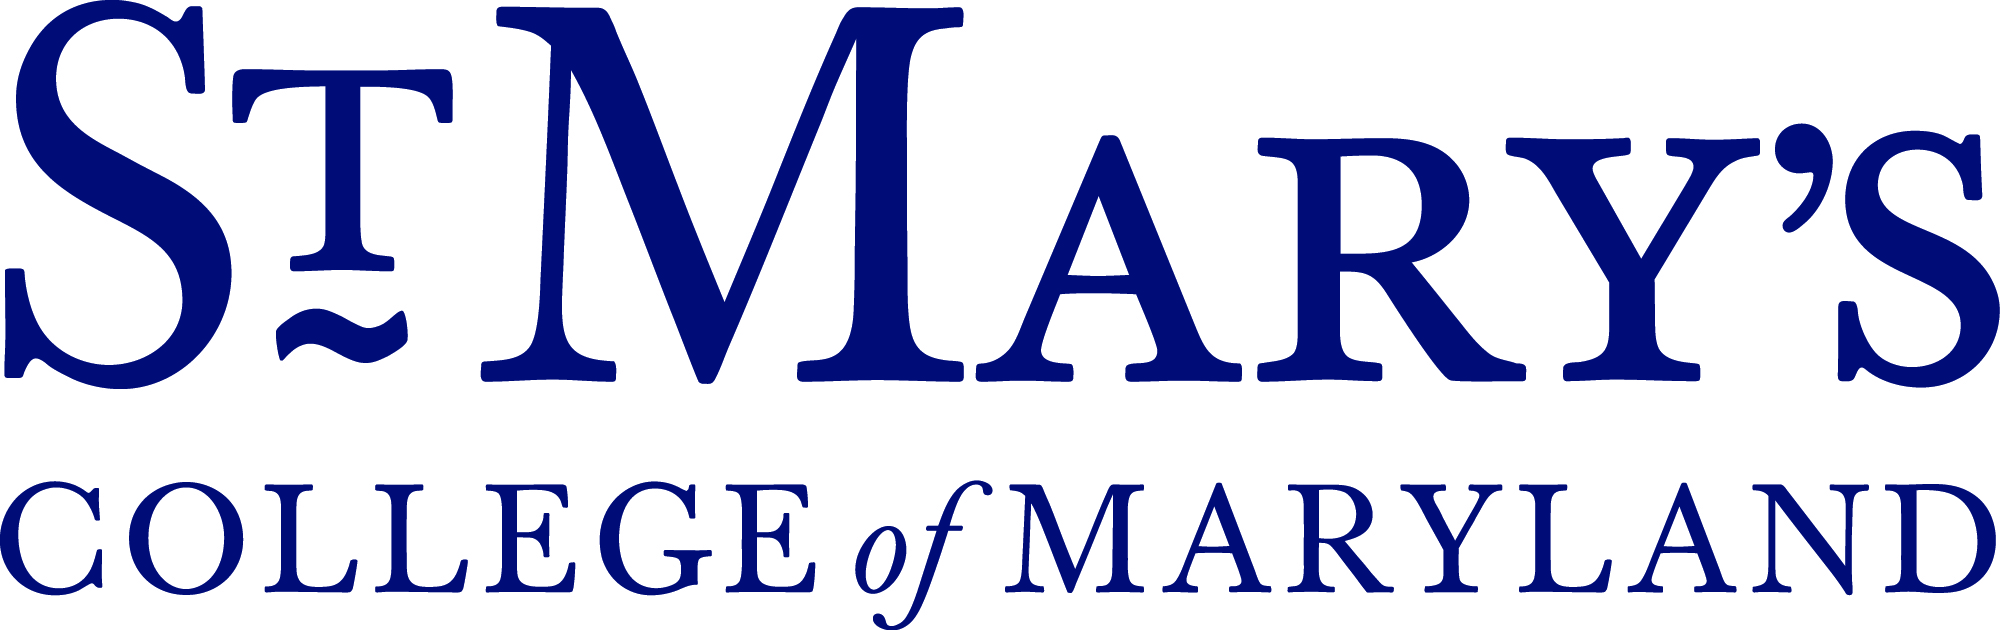 St. Mary's College of Maryland